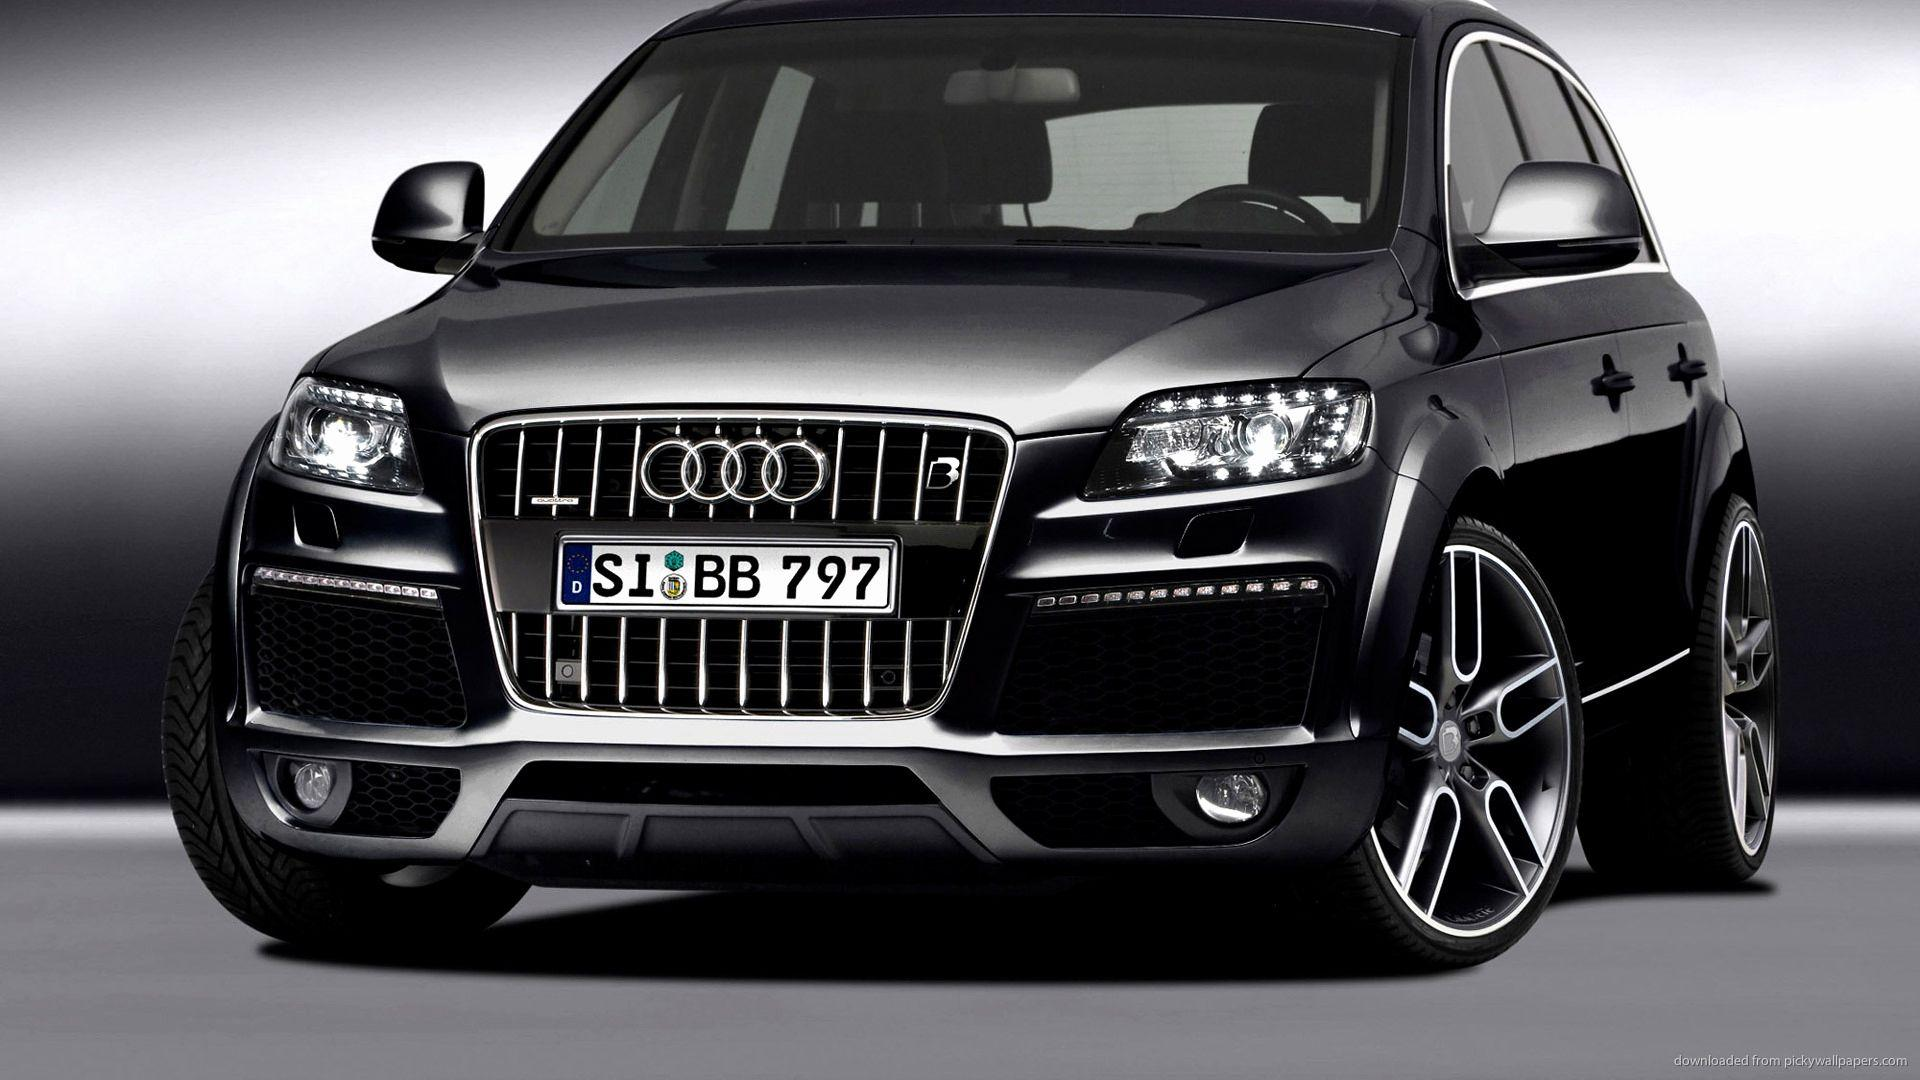 Wallpapers Of Audi Cars Lovely Audi Q7 Hd Pics – Car Wallpapers HD